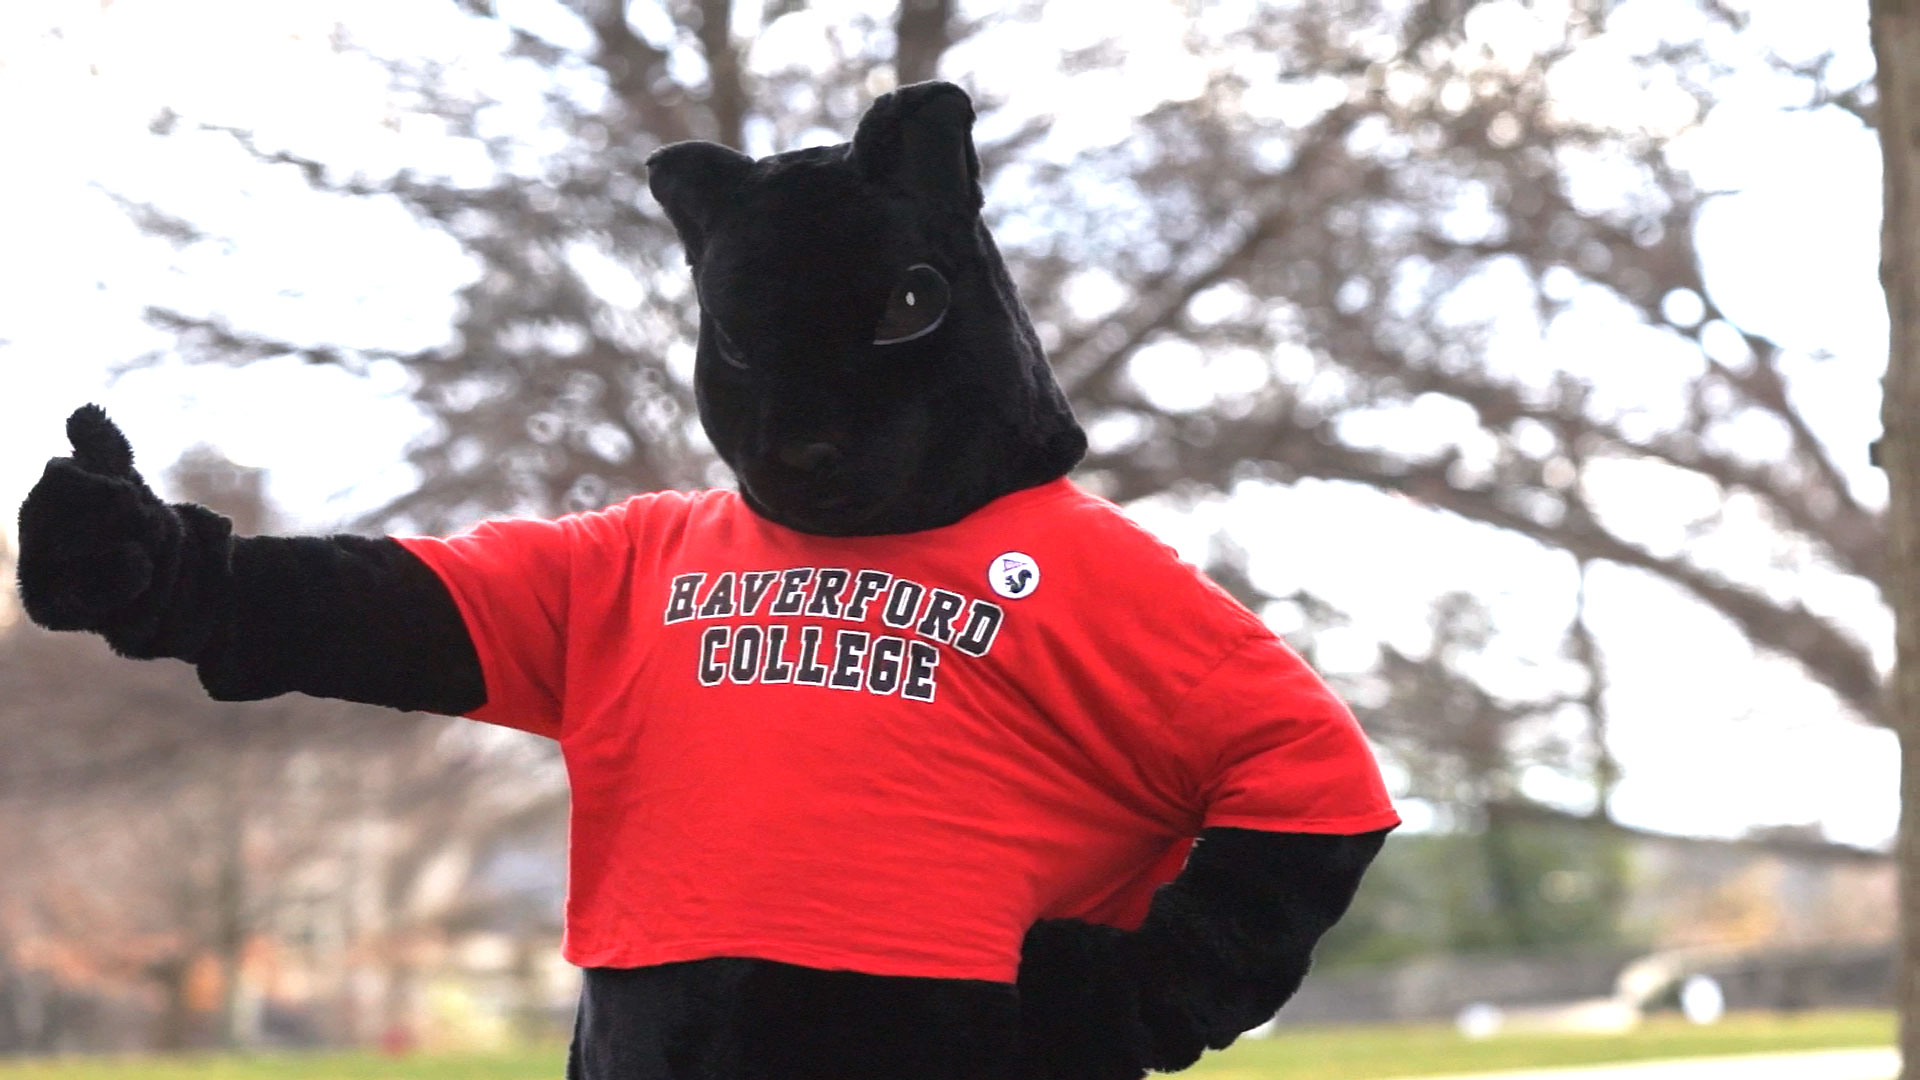 the black squirrel mascot giving a thumbs-up